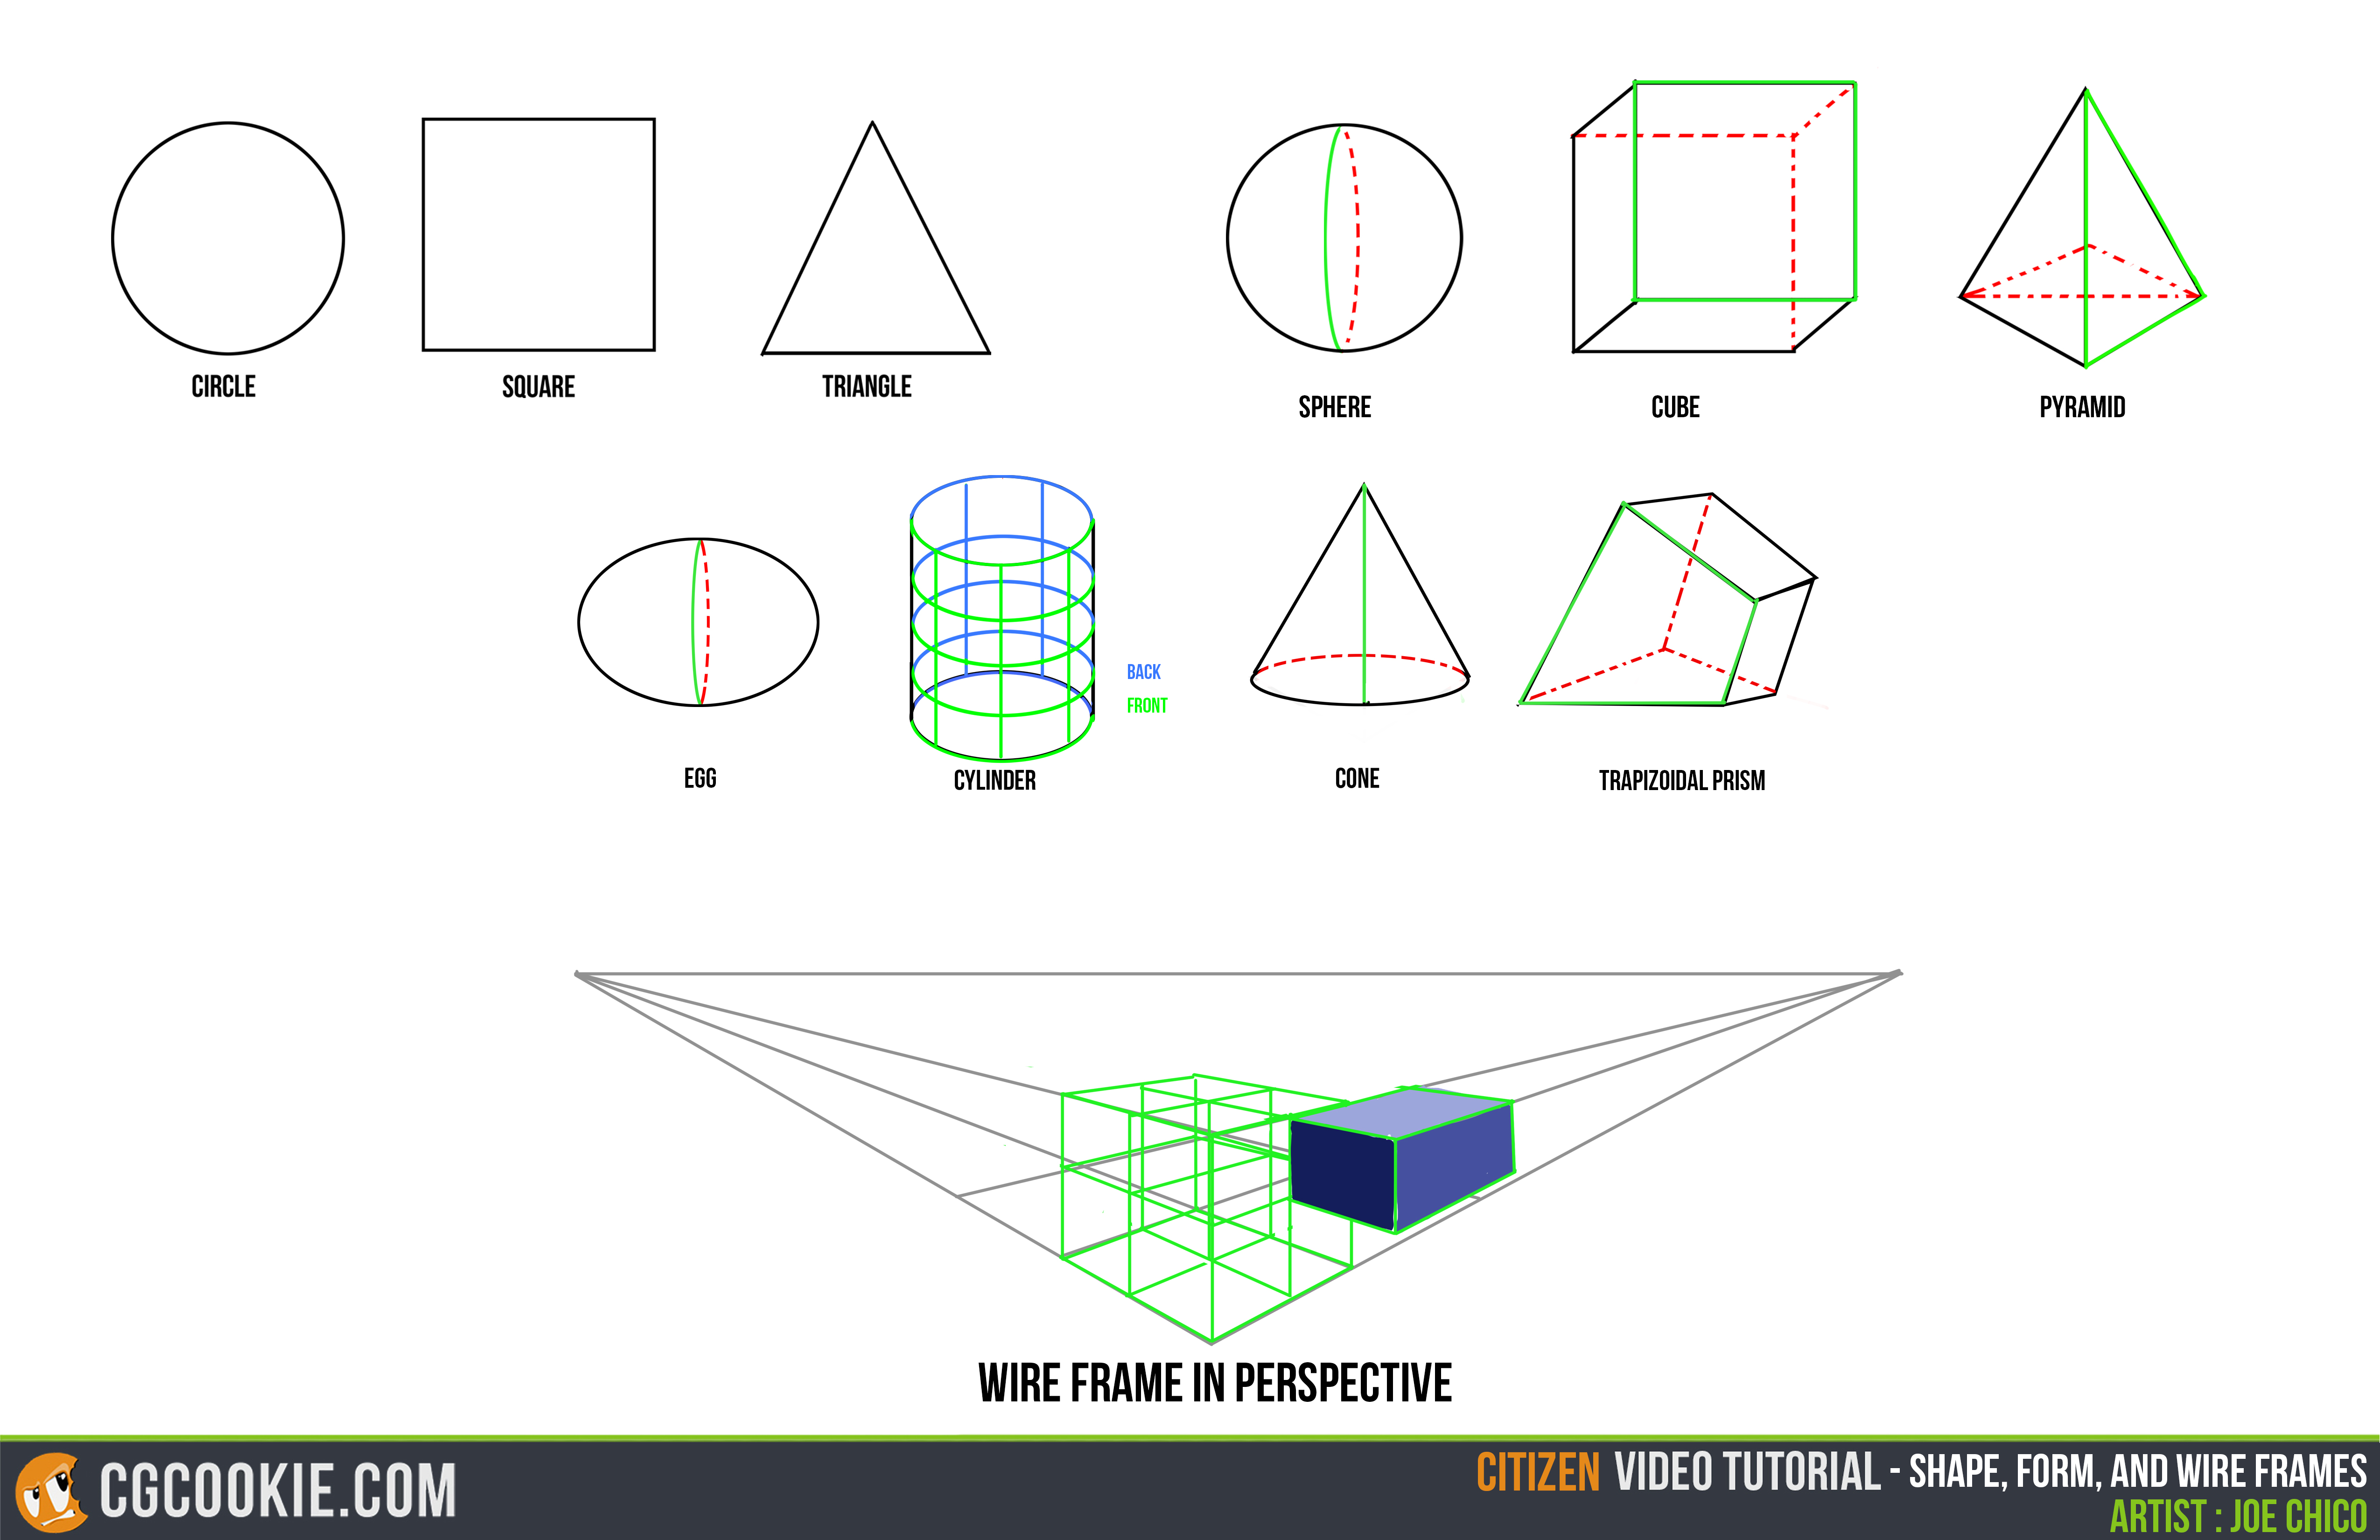 Shape And Form In Art : Tutorial shape form and wireframes by cgcookie on